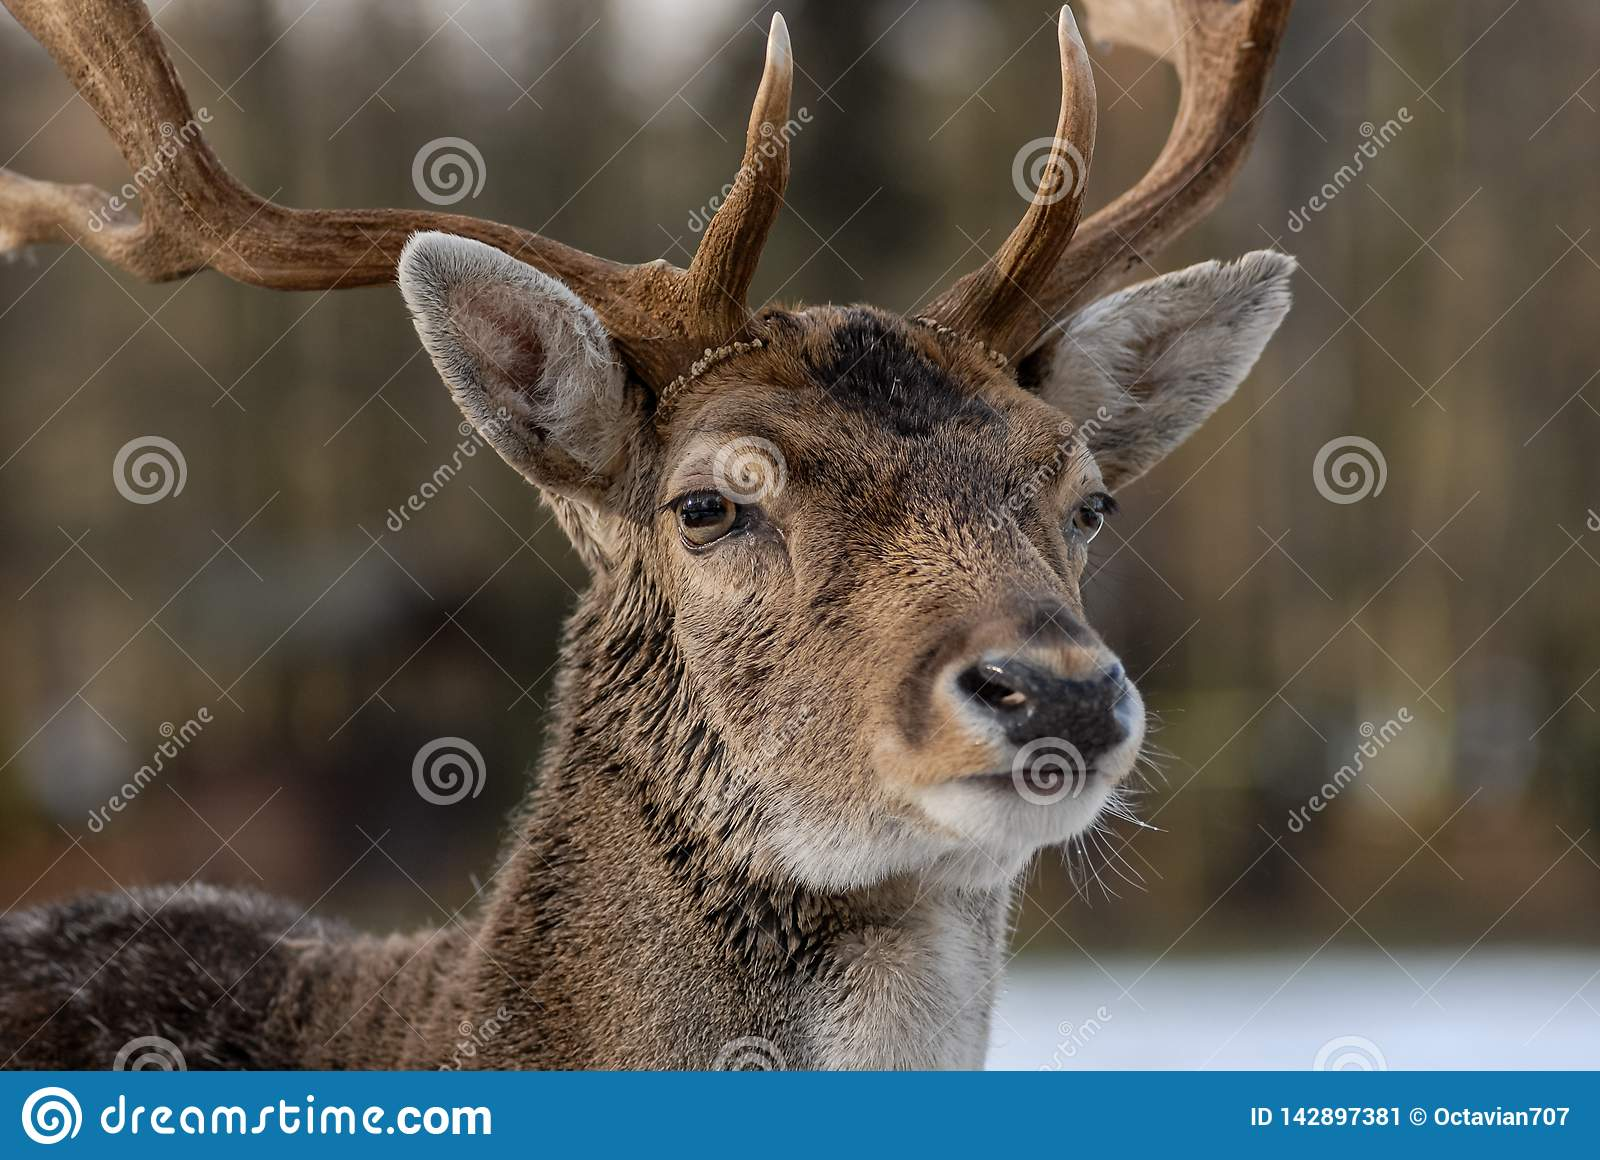 Portrait of deer in the forest with blurry background